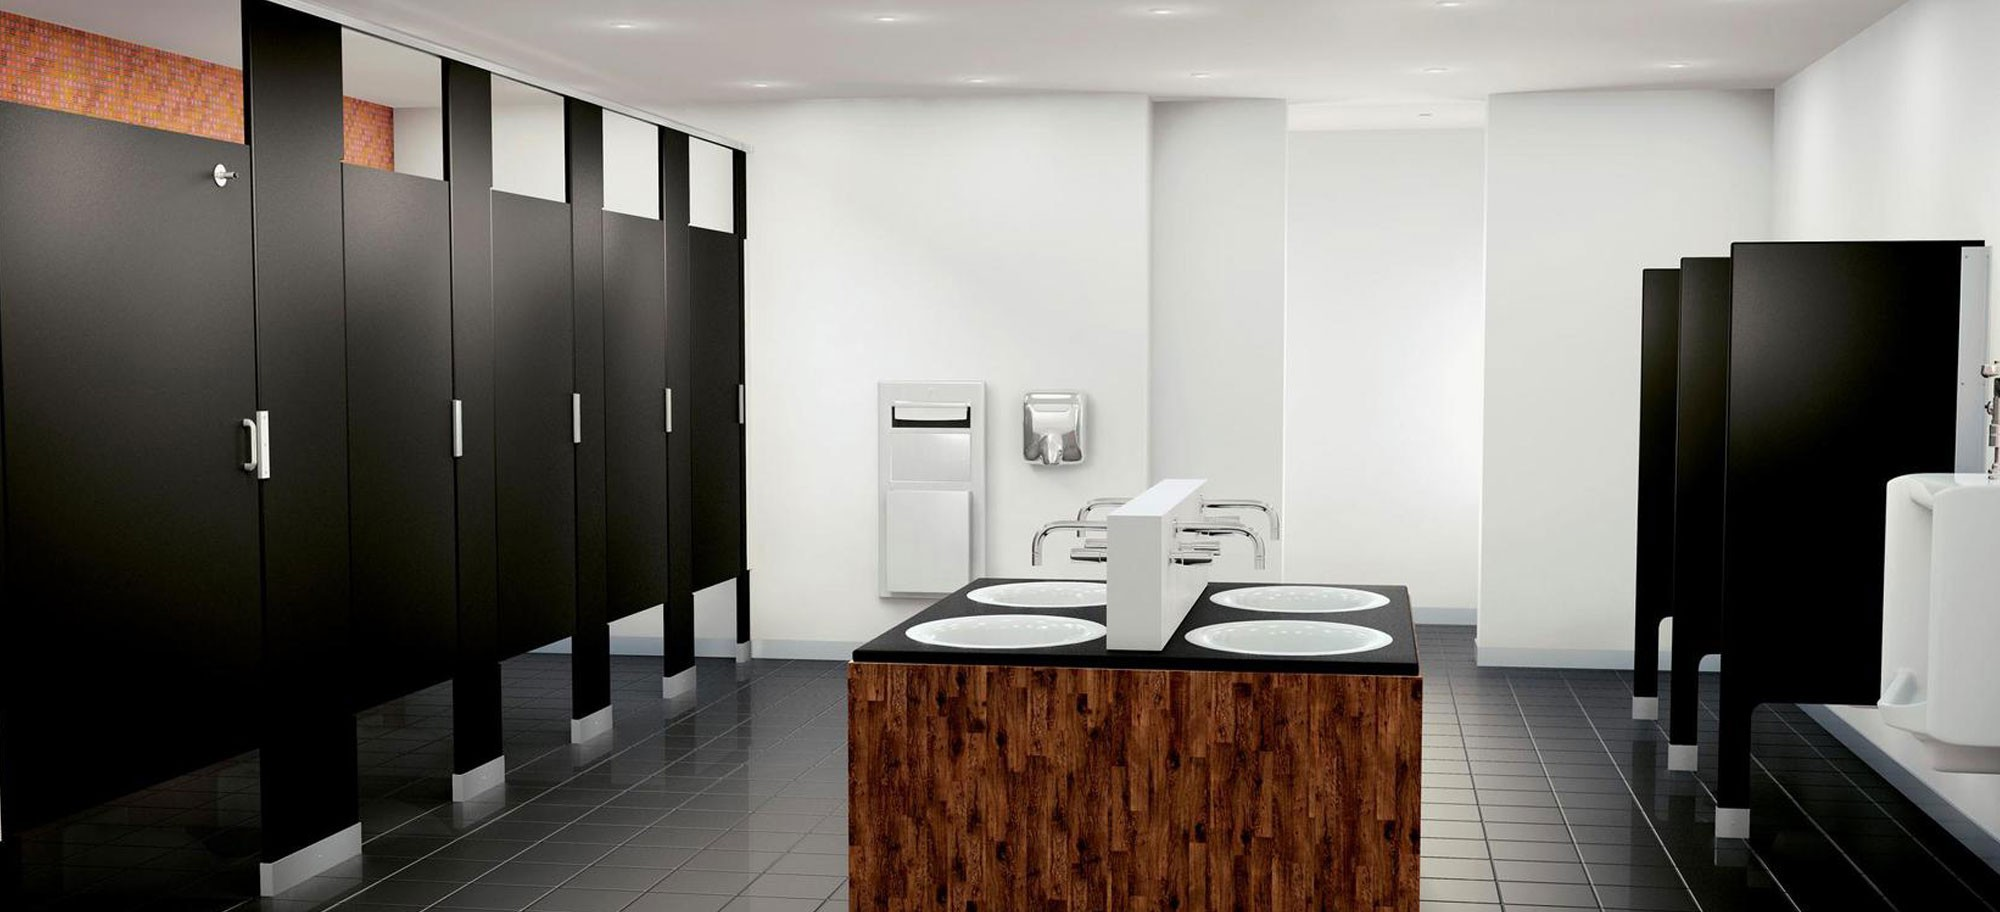 Wholesale Toilet Partitions School Lockers Canadian Washroom Products - How to install bathroom partitions